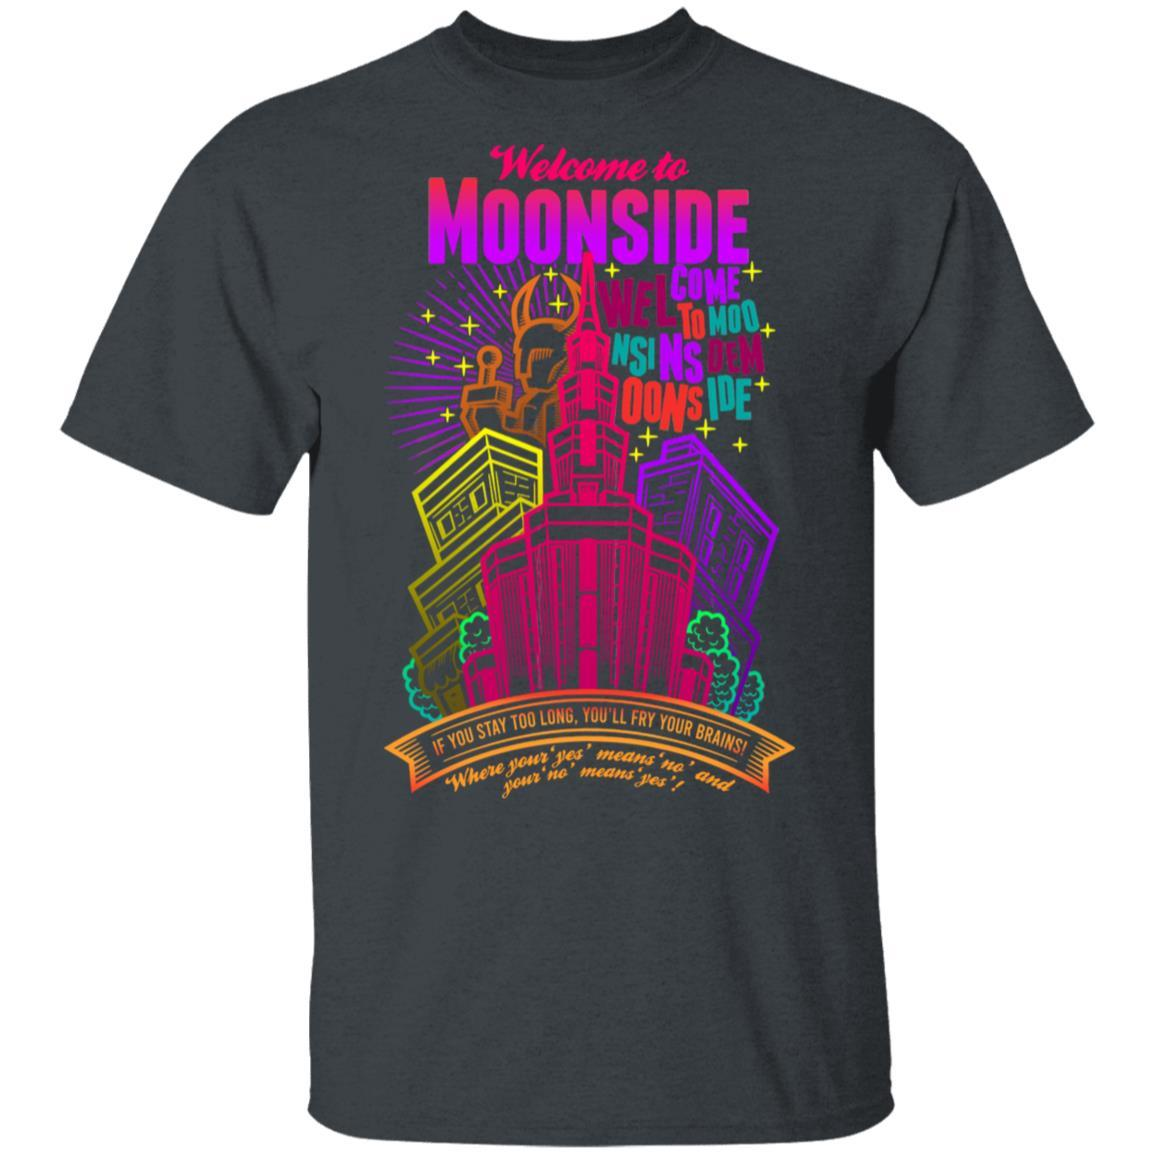 Welcome To Moonside If You Stay Too Long You'll Fry Your Brains T-Shirts, Hoodies 1049-9957-88445012-48192 - Tee Ript